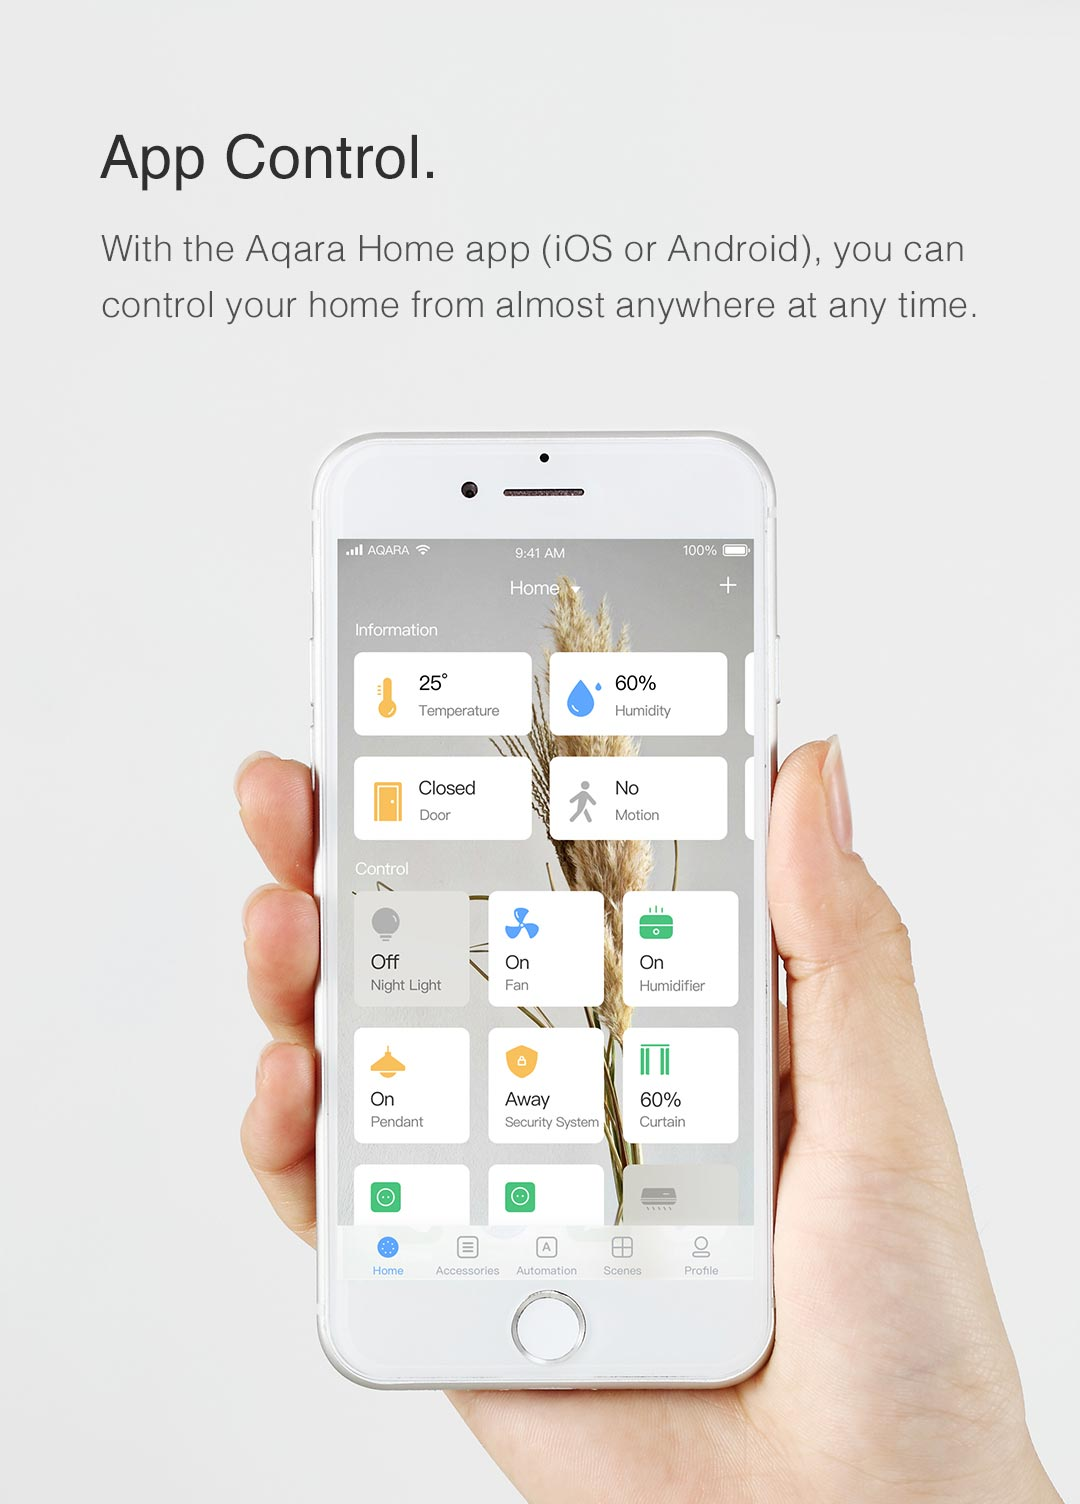 With the Aqara Home app (iOS or Android), you can control your home from almost anywhere at any time.